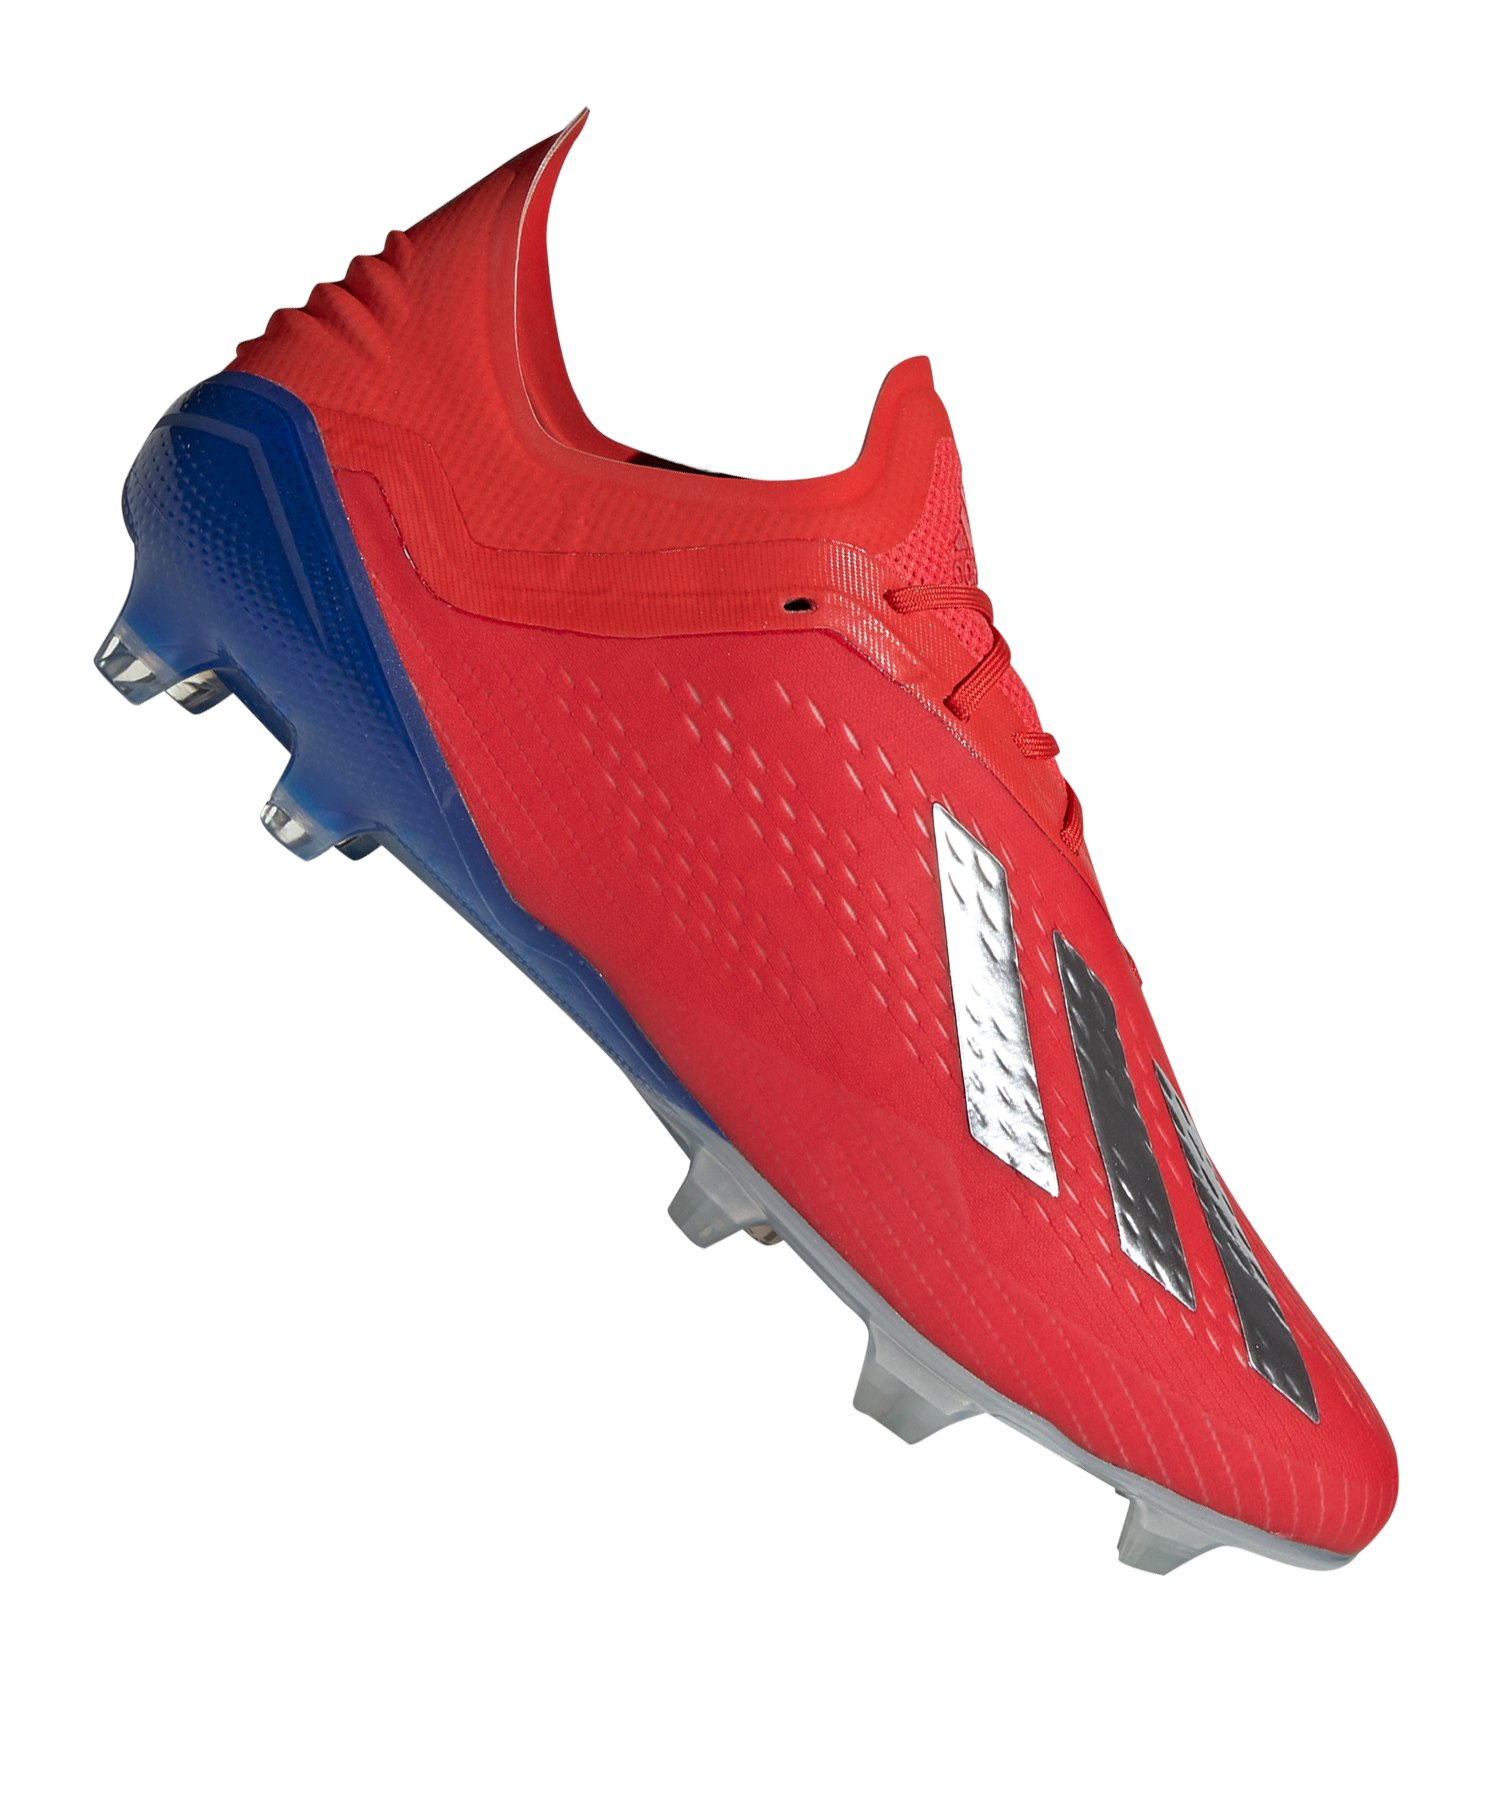 the latest 1b65e 7fd35 adidas X 18.1 FG Rot Blau - rot